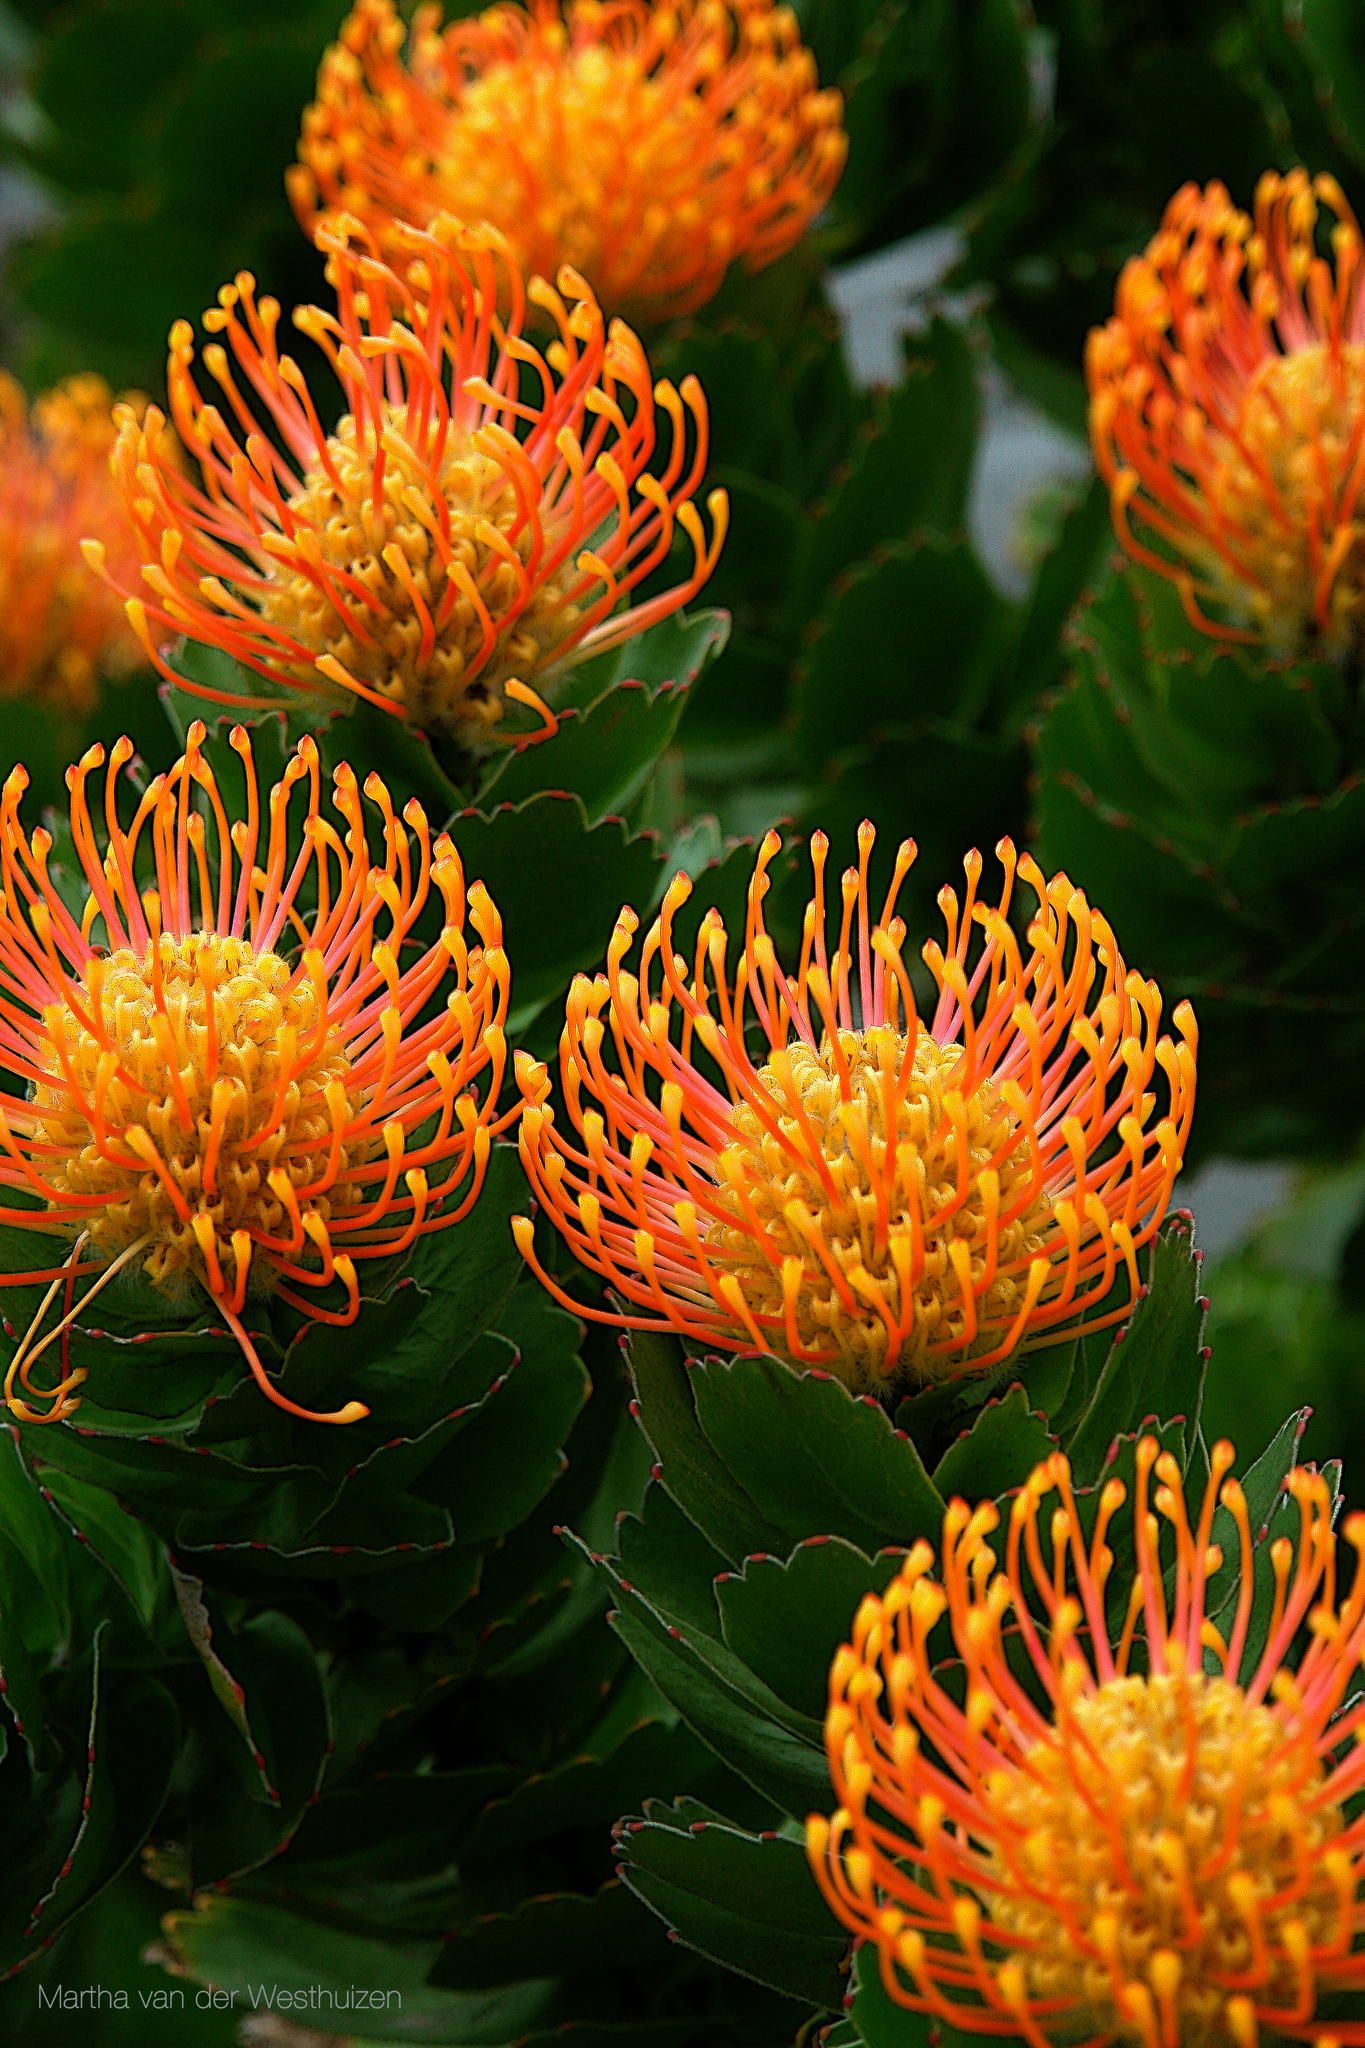 I like this orange pincushion at table etc together with proteas